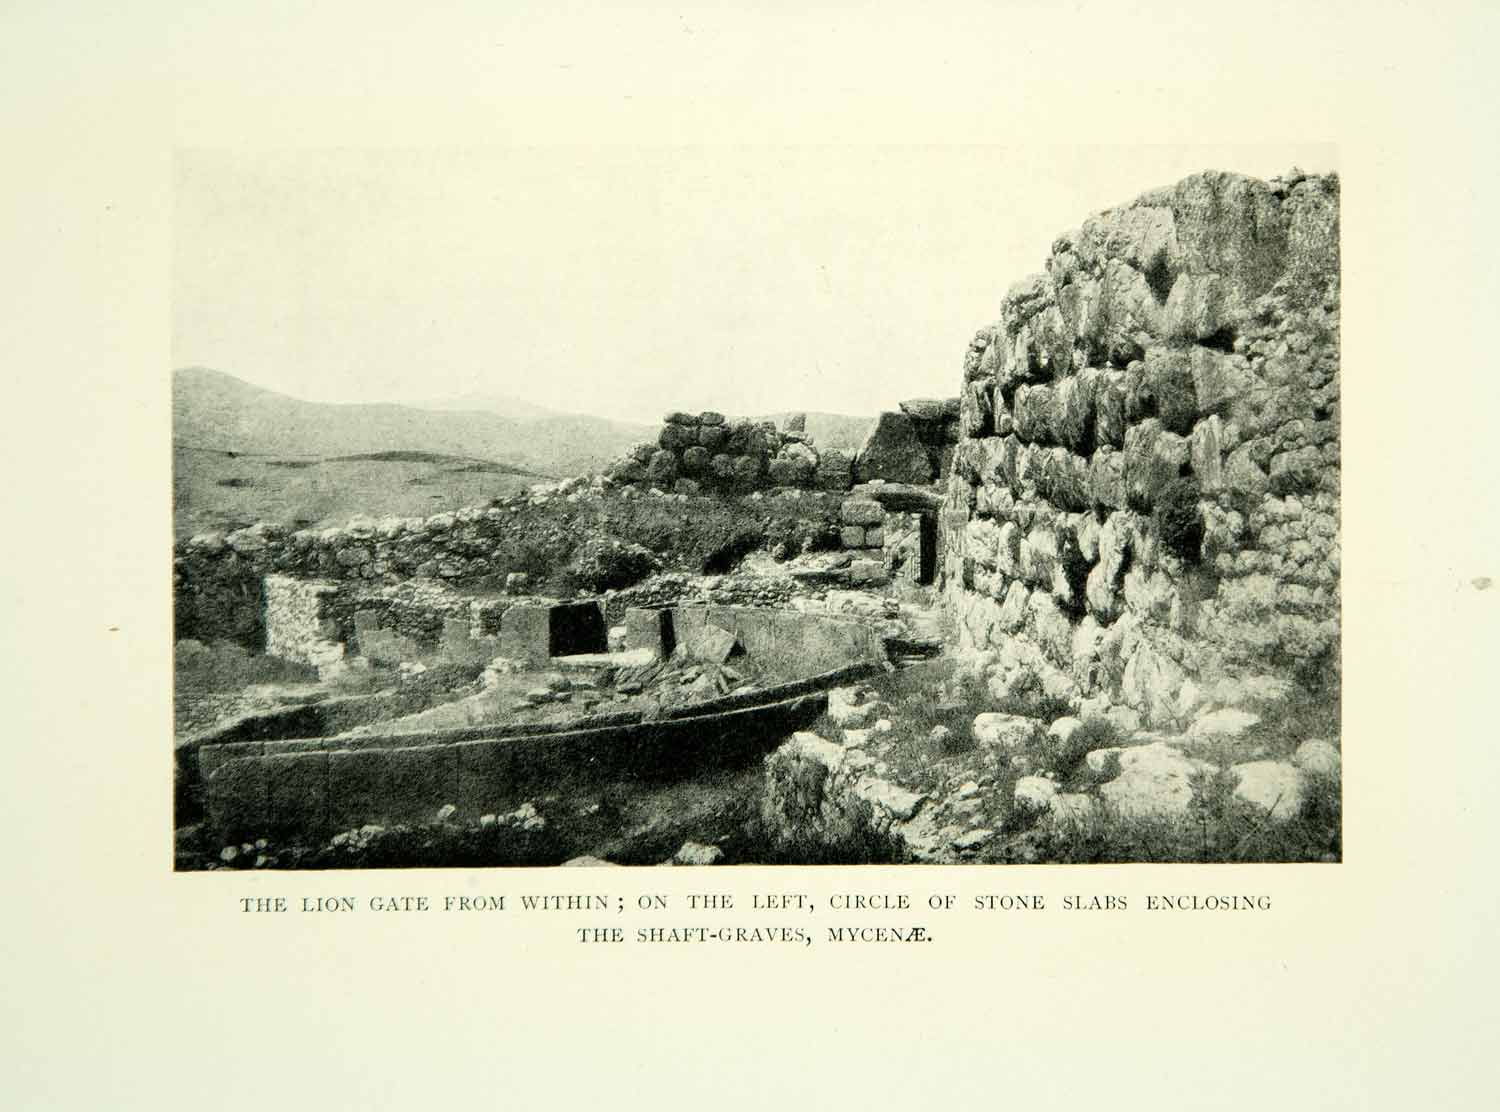 1909 Print Lion Gate Fortress Mycenae Greece Archaeology Bronze Age XGID3